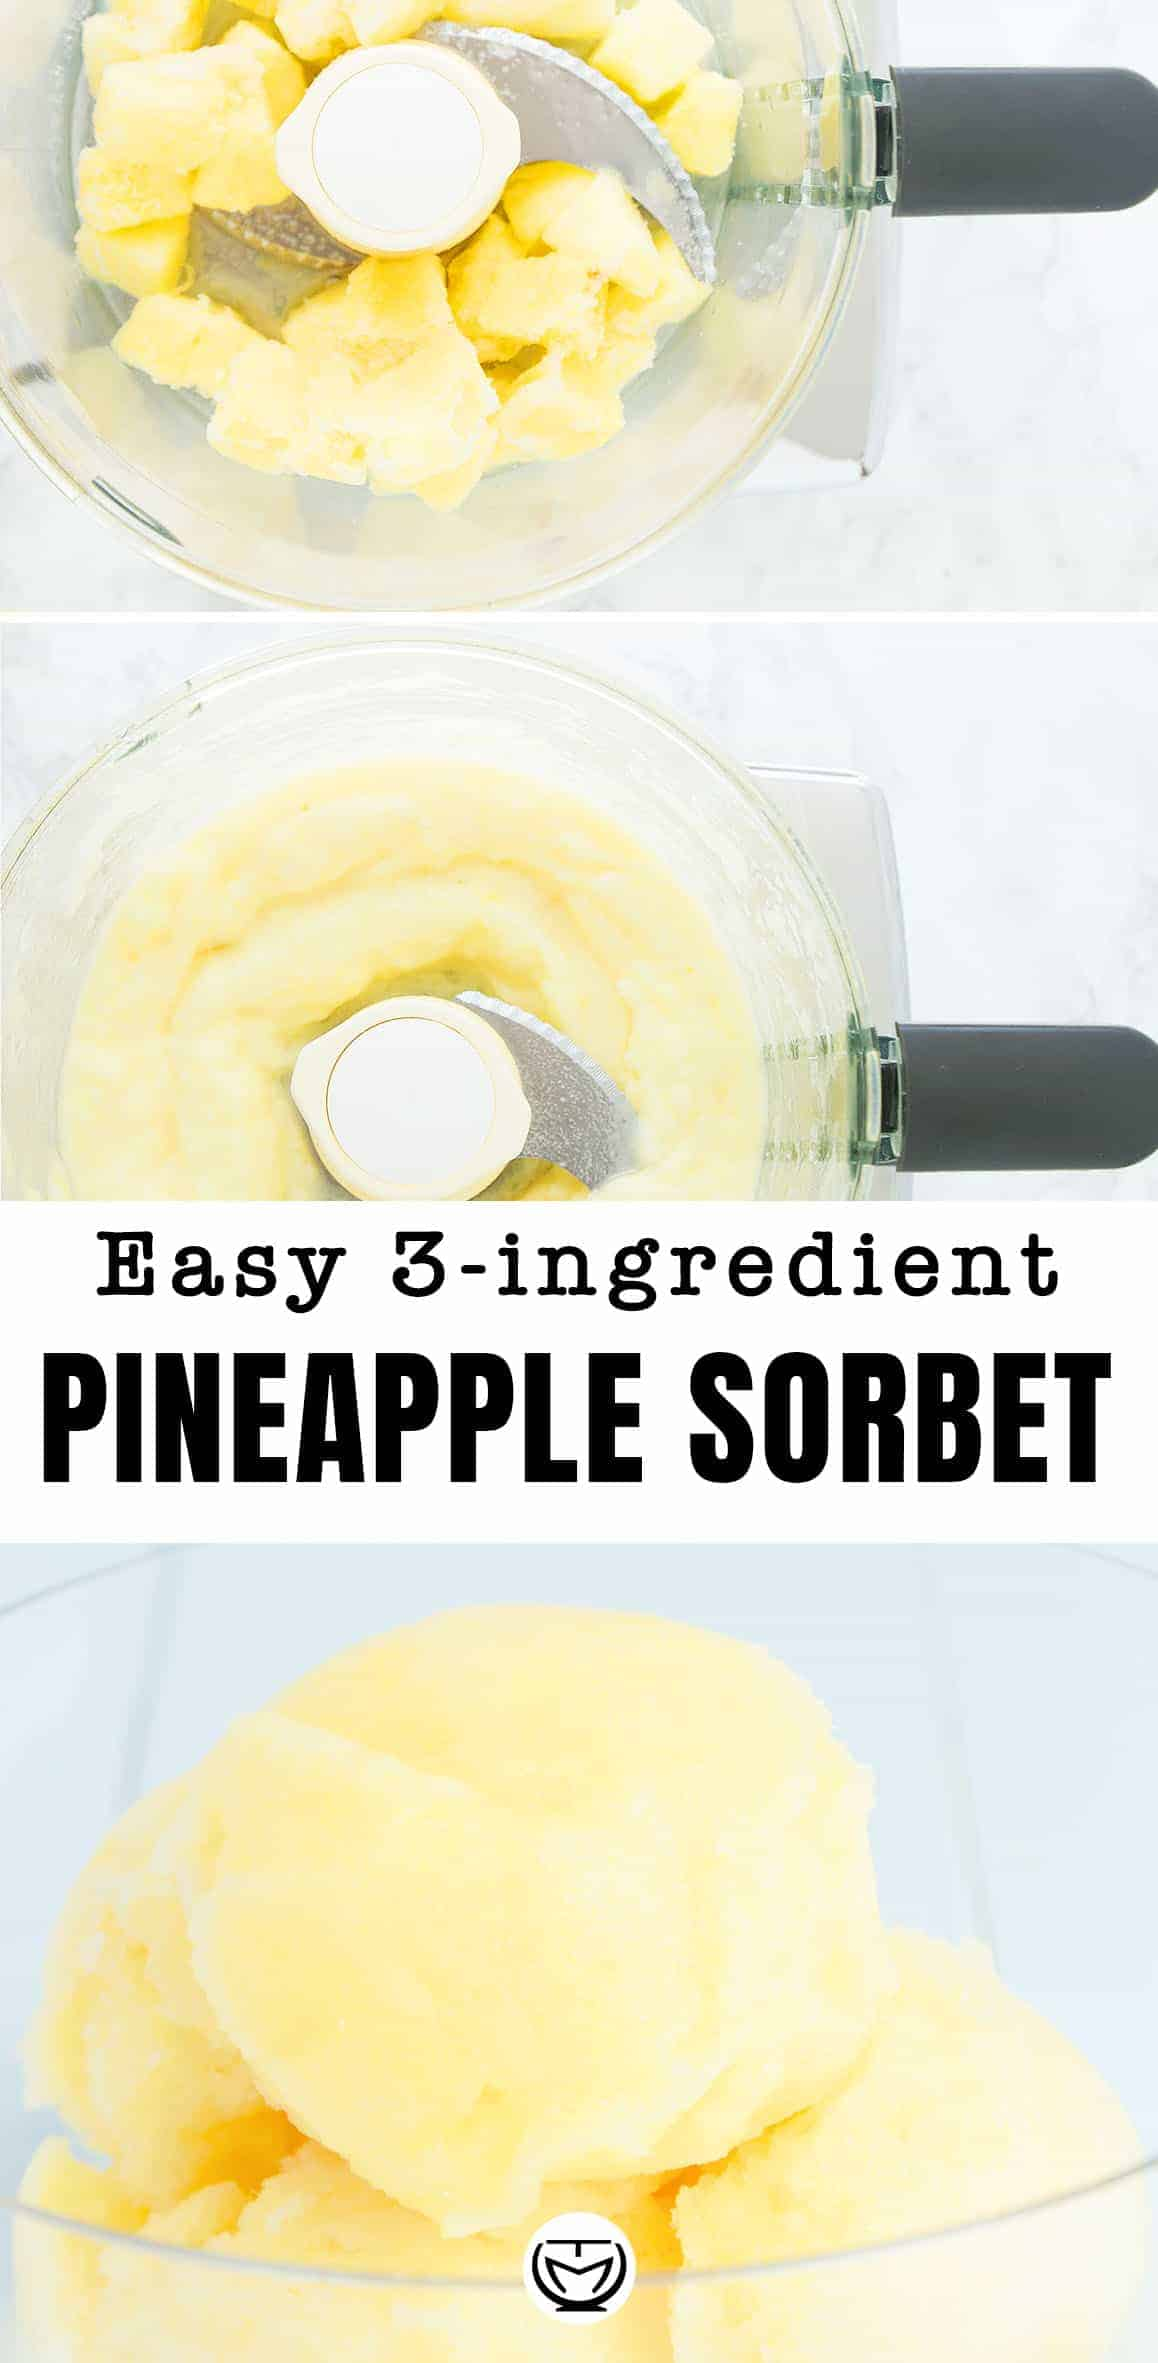 This easy and delicious 3-ingredient pineapple sorbet will be ready in no time!